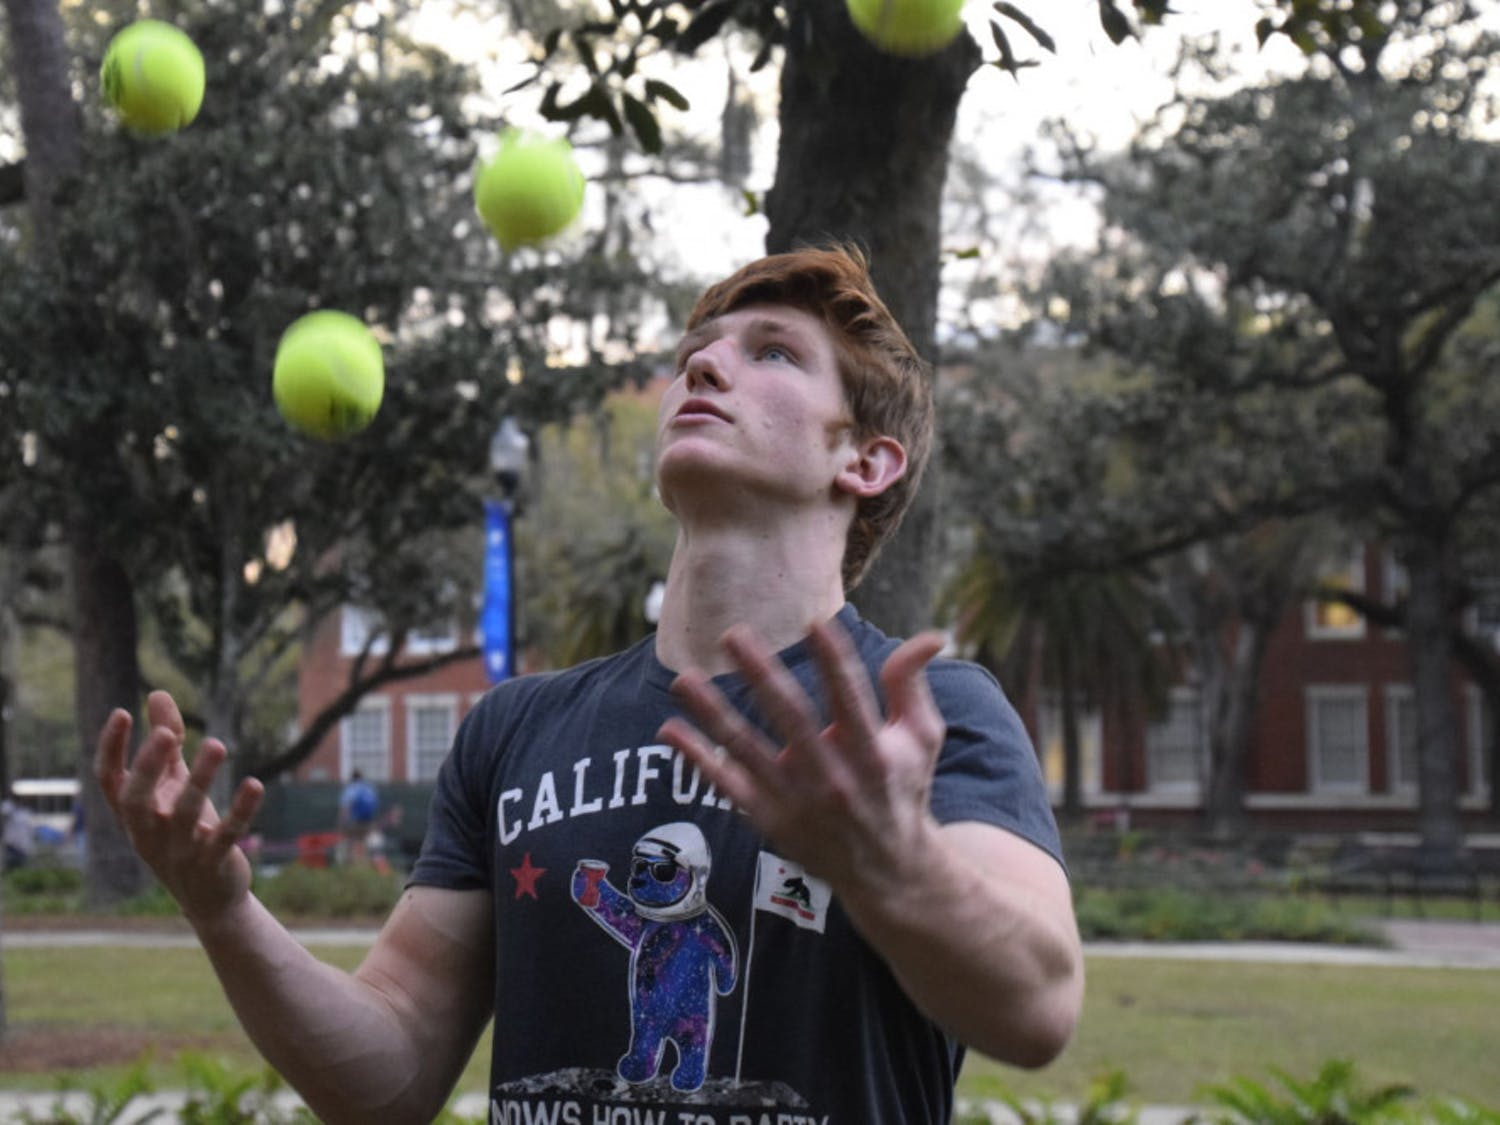 Devin Pryor, a 20-year-old UF aerospace engineering sophomore, juggles in front of Library West on Tuesday. It was one of his first meetings with UF Juggling Guys.